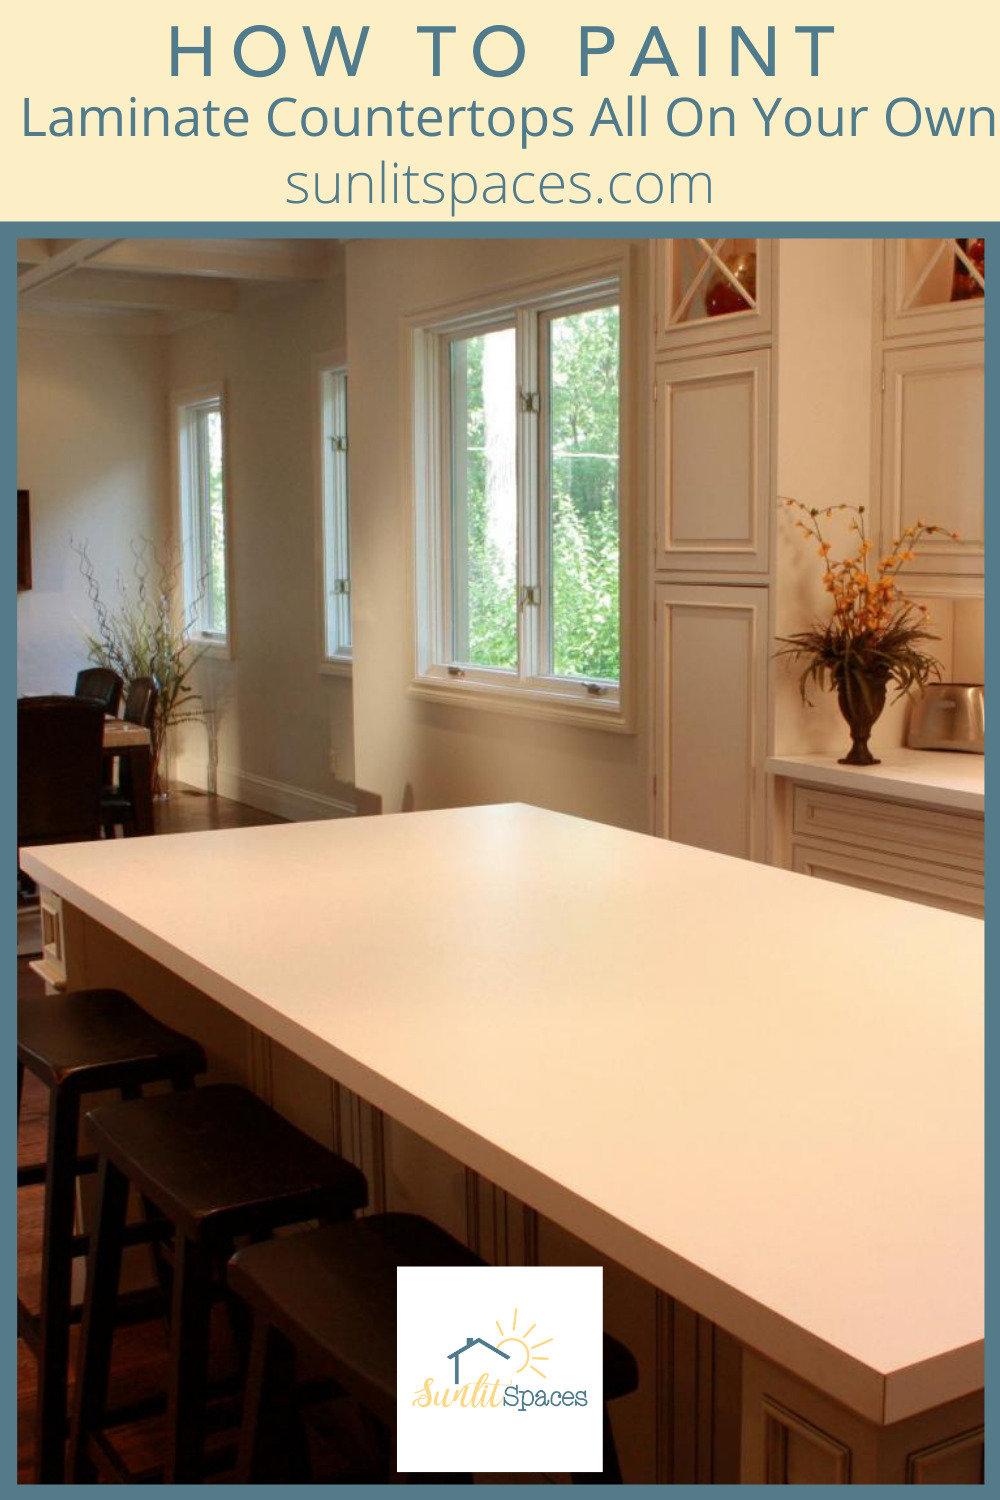 Sunlitspaces.com is all about making your space your own. Find your personal style and create a home you love. Get started on a kitchen makeover with these tips for painting laminate countertops.